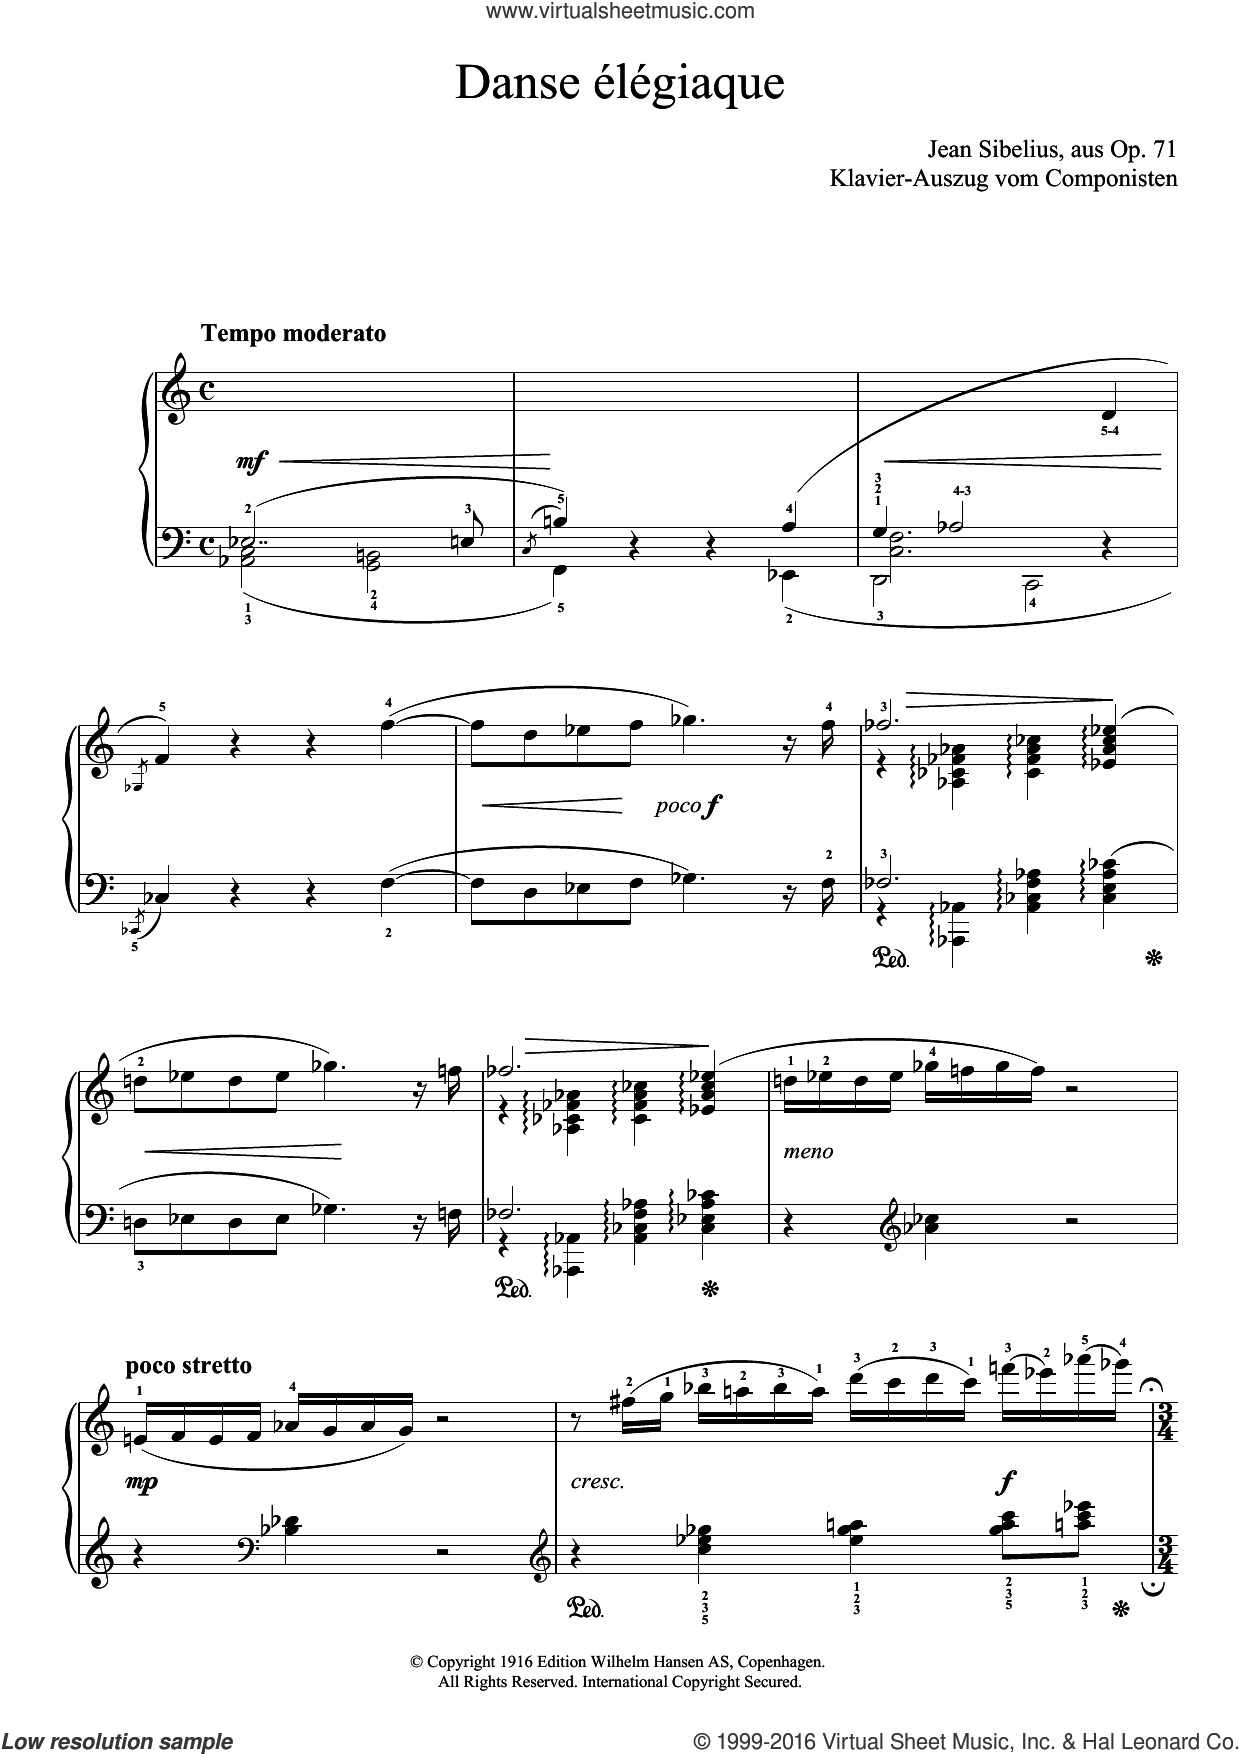 Danse Elegiaque (From Scaramouche, Op.71) sheet music for piano solo by Jean Sibelius. Score Image Preview.